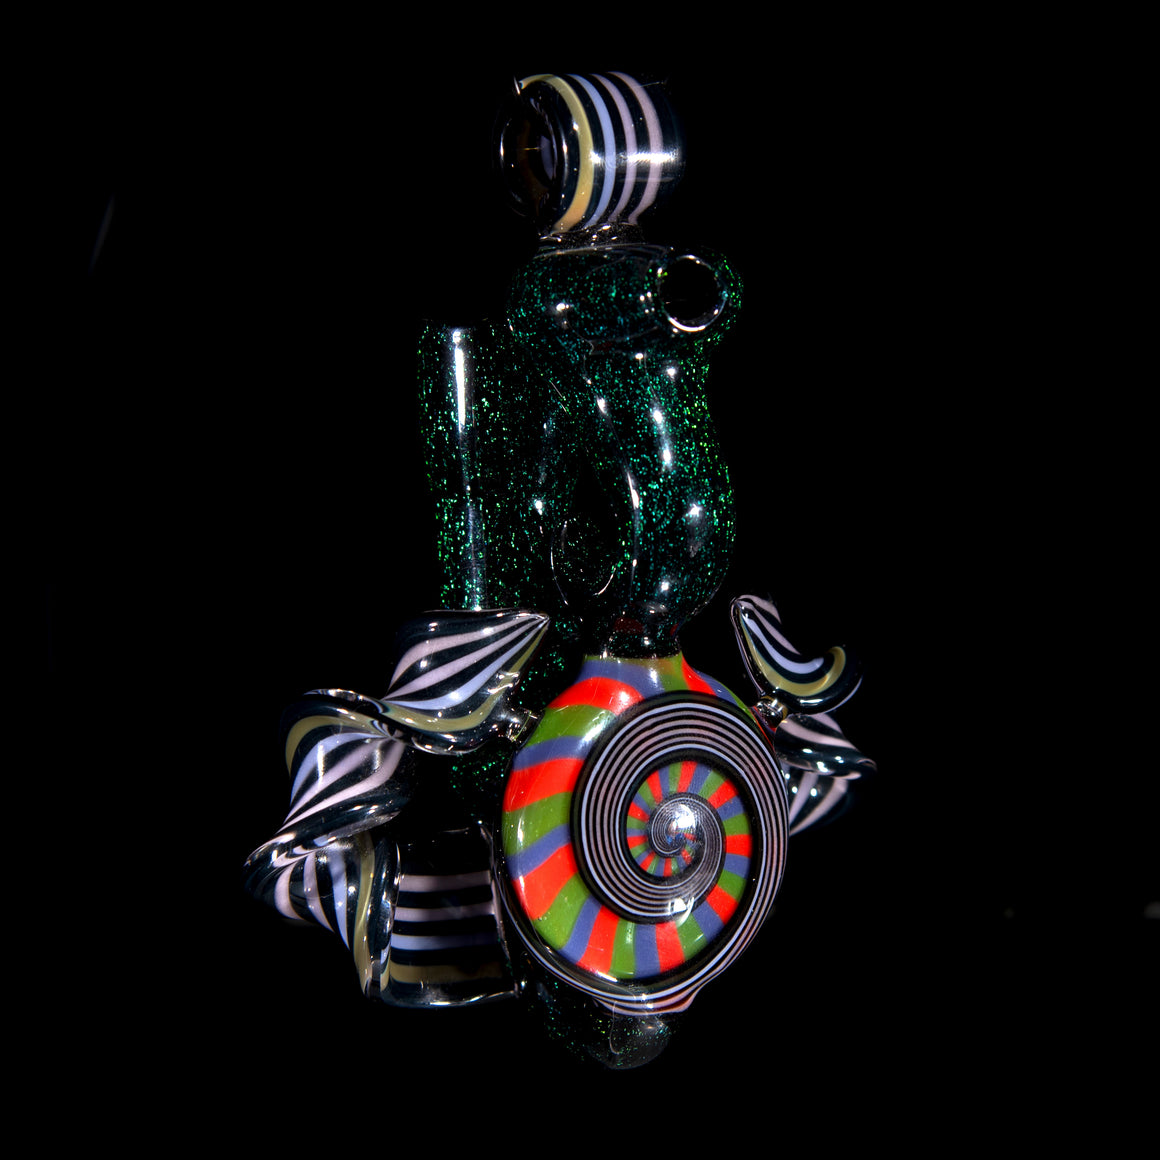 Pendant Rig #1 - RGB Staircase with Dichro and Twisted Canes